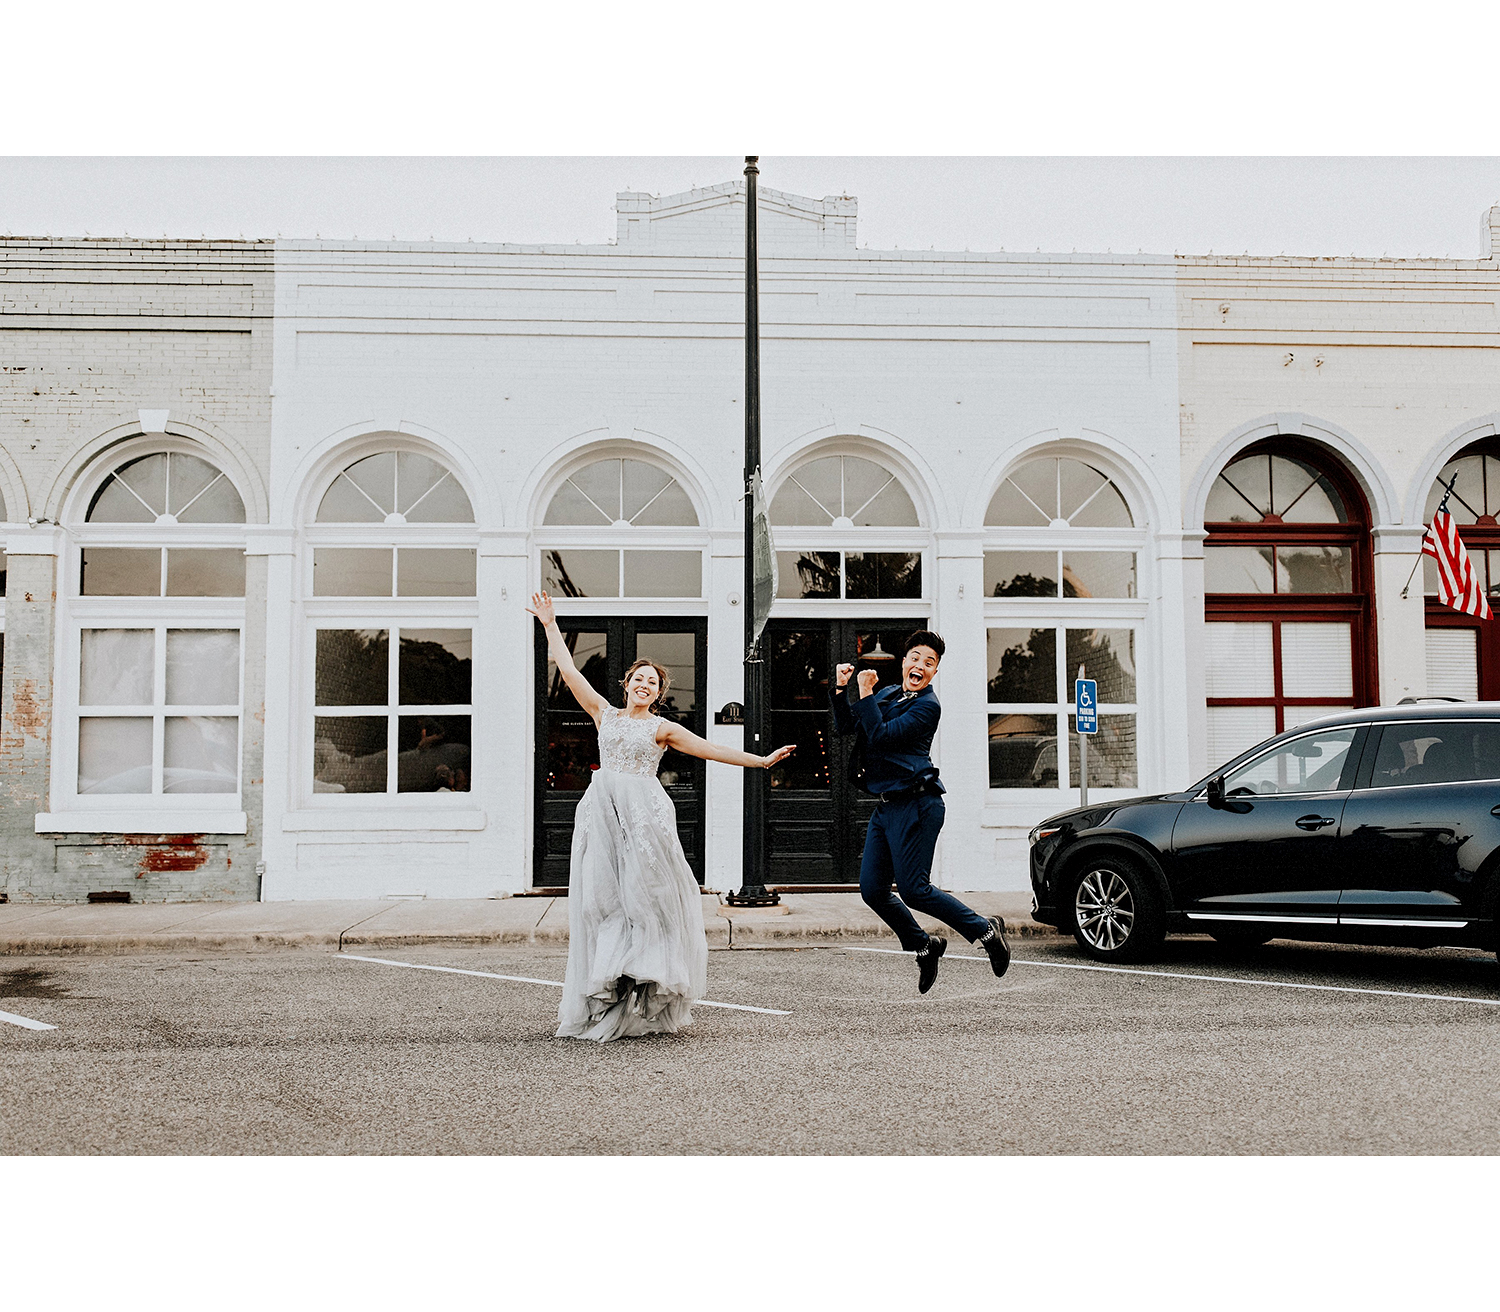 This couple couldn't contain their enthusiasm about tying the knot.